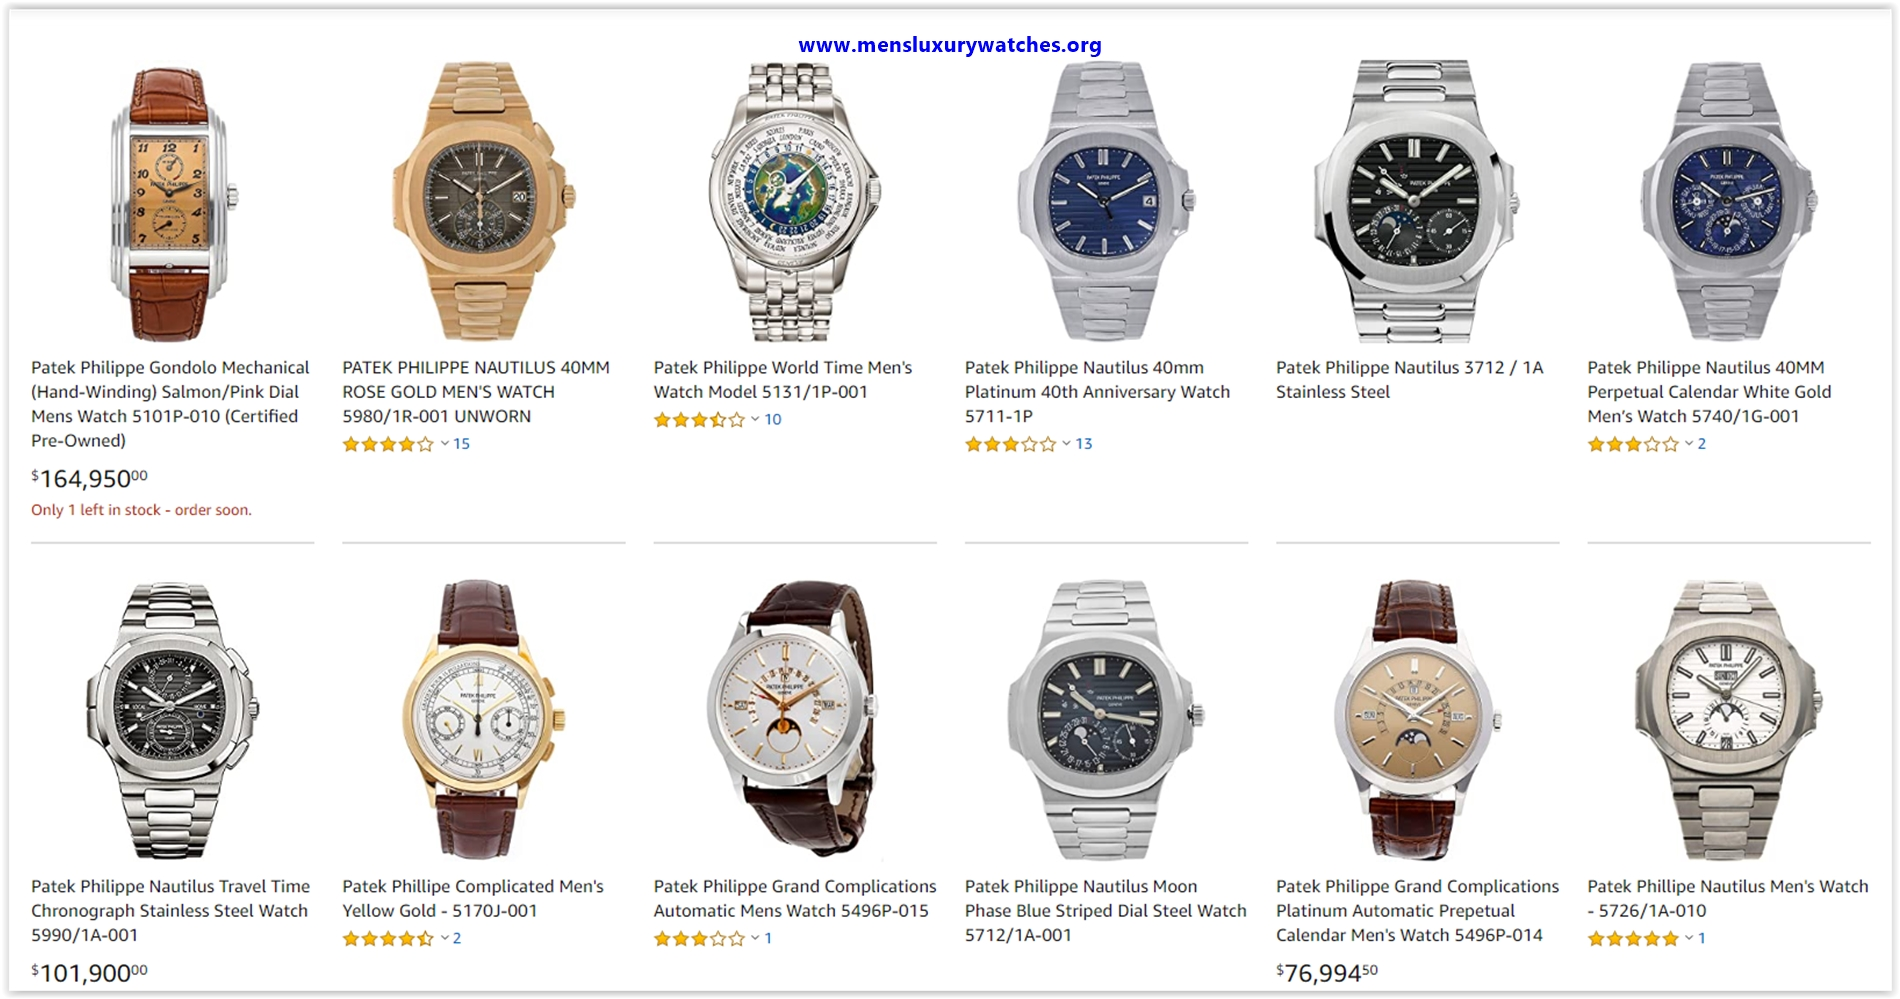 Top 10 Patek Philippe Watches for your collection